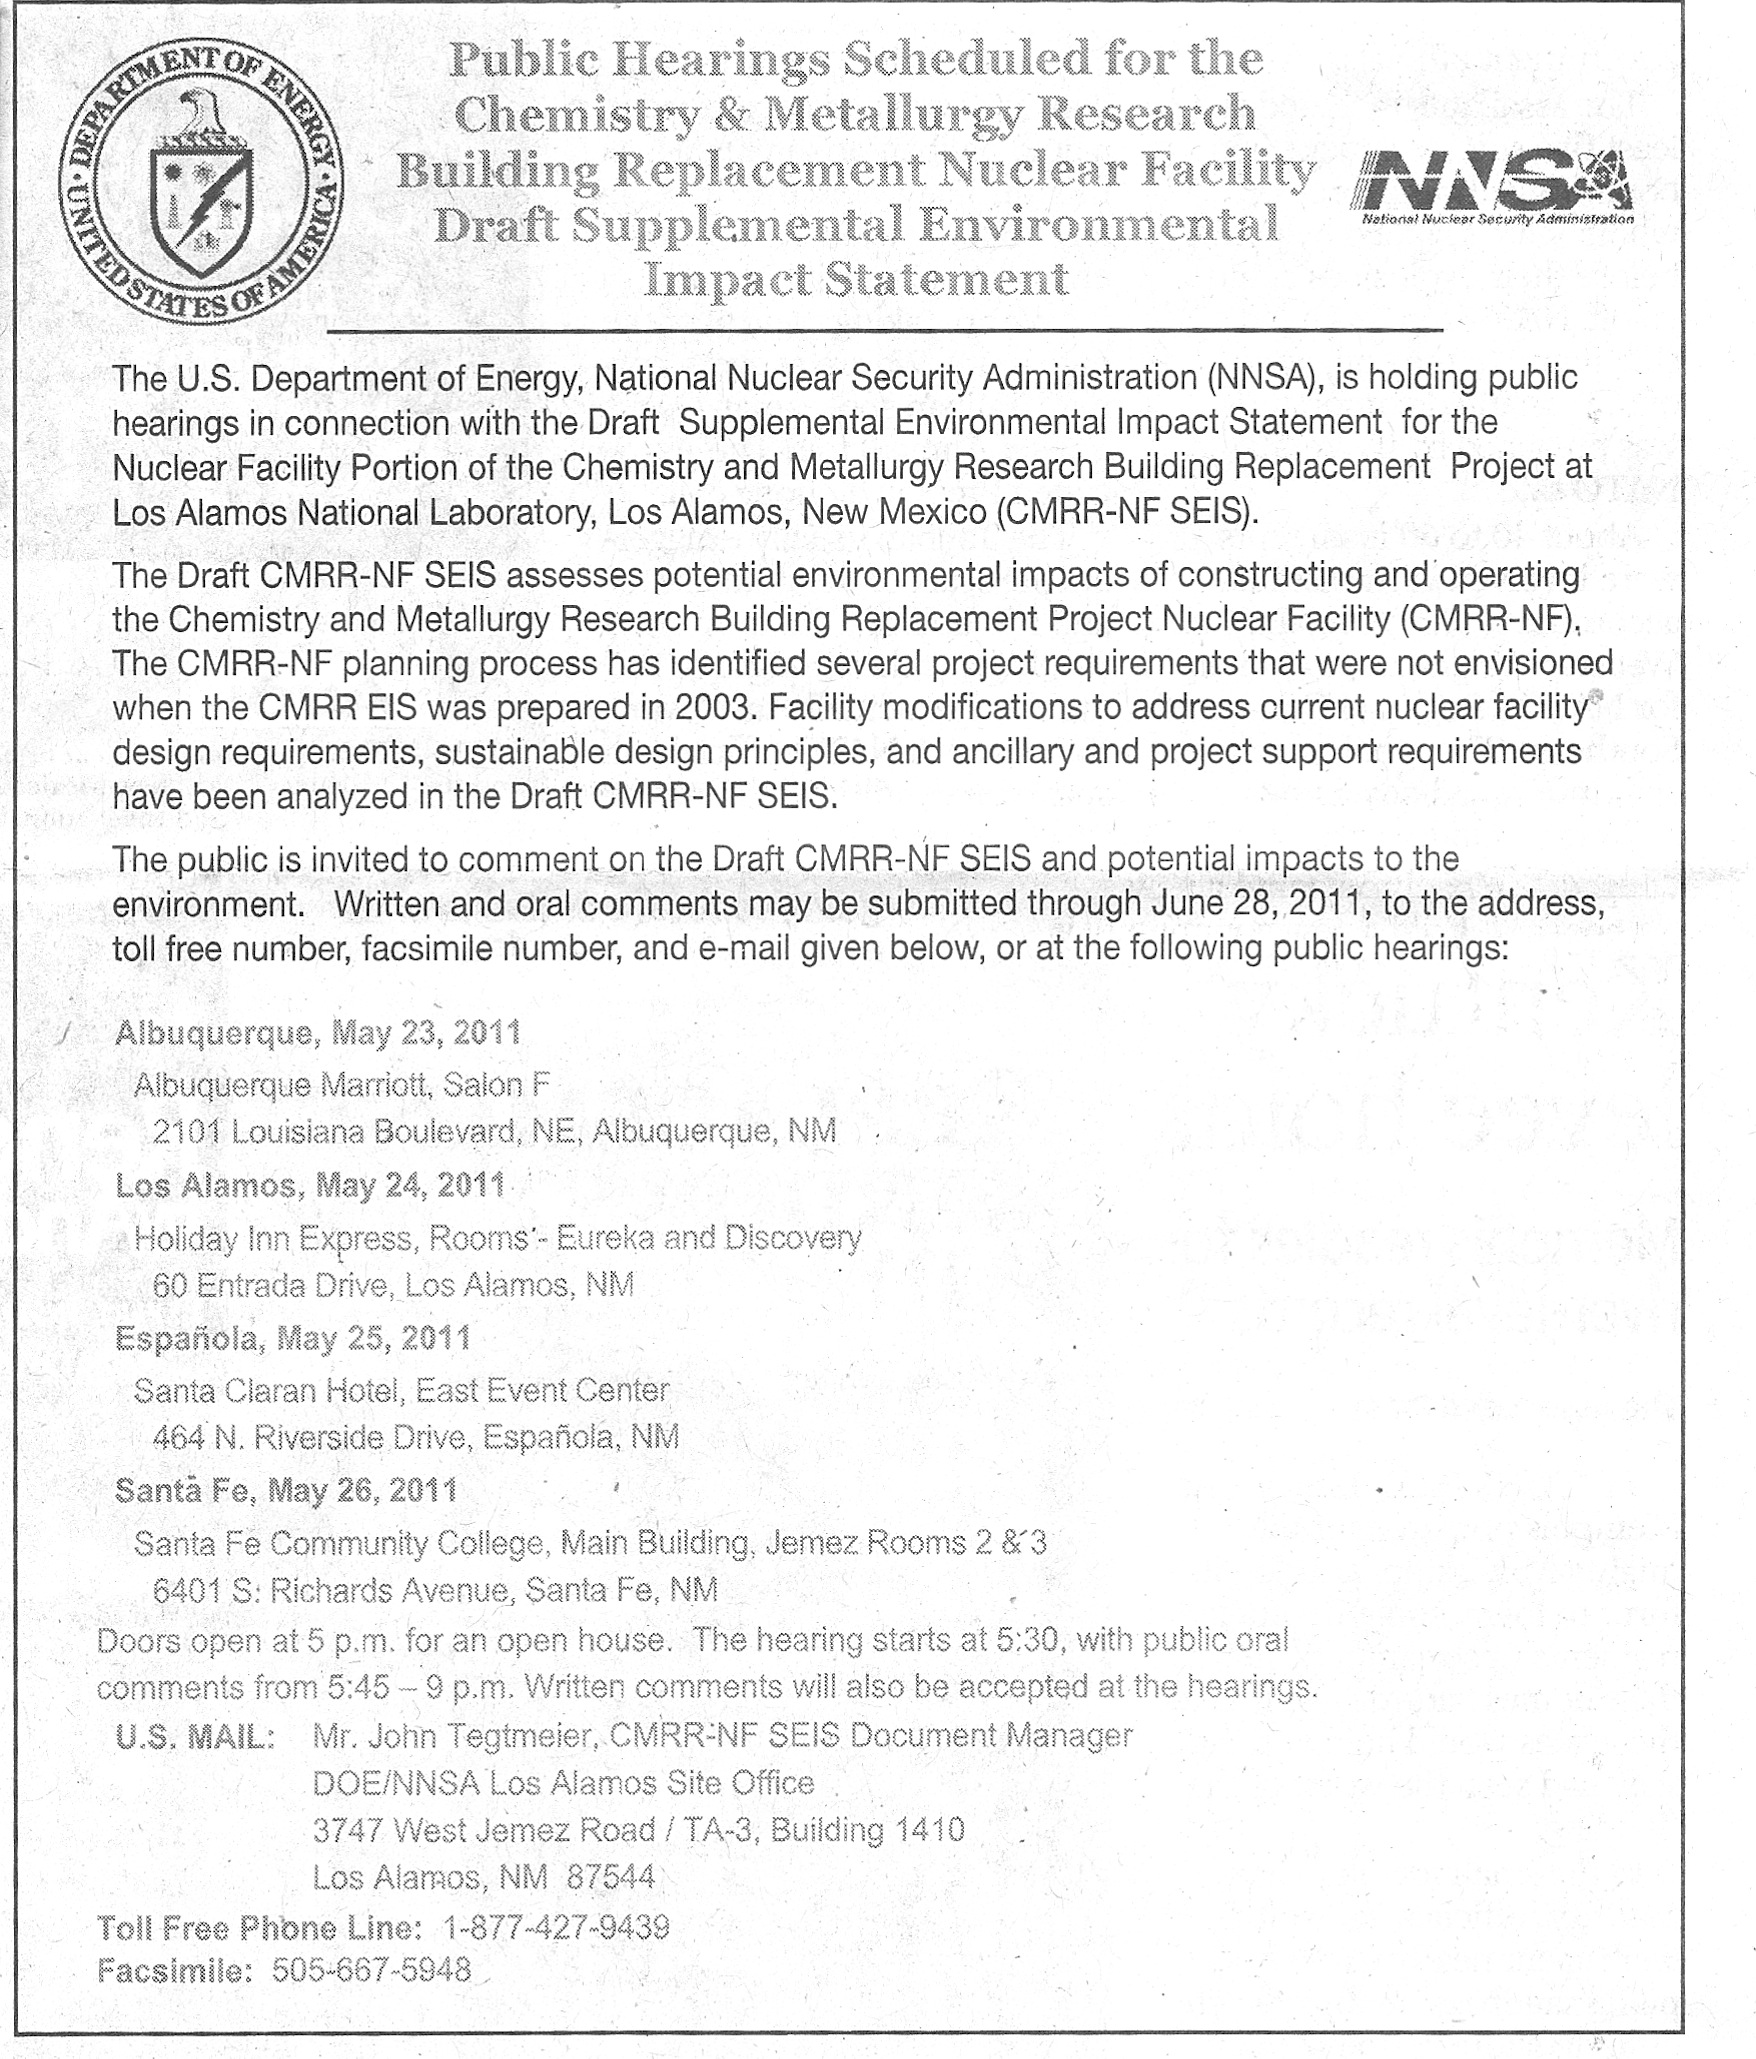 Supplemental Environmental Impact Statement Meetings